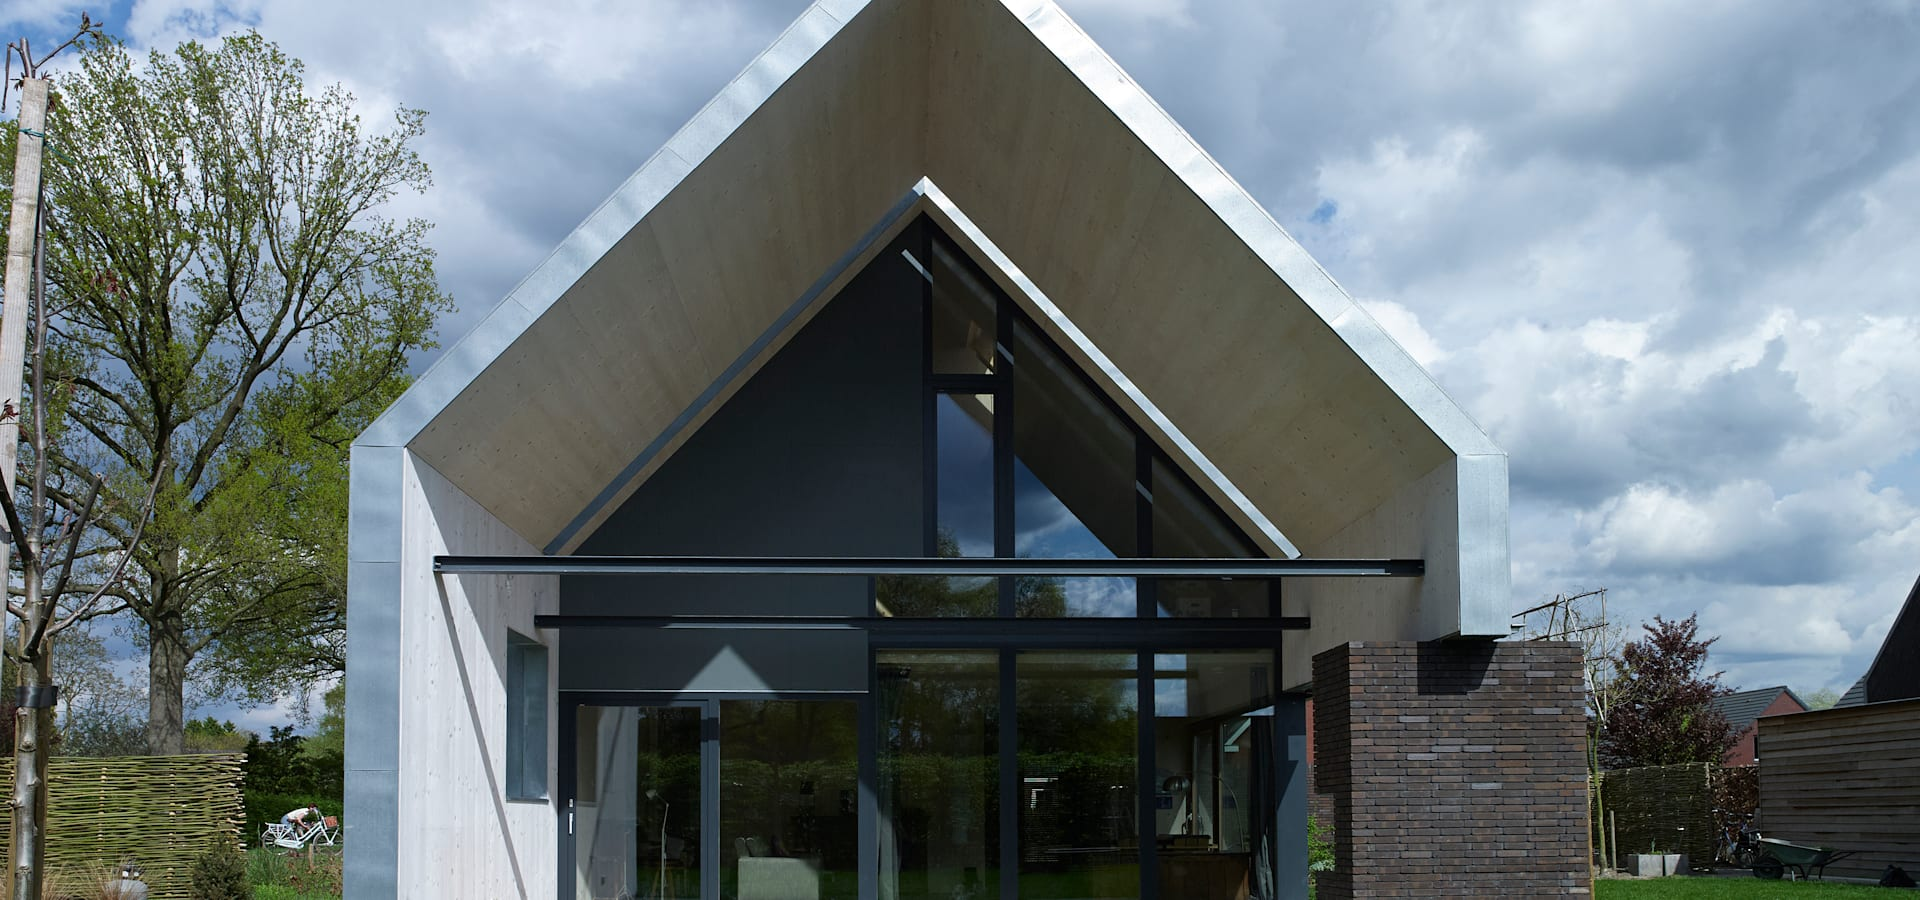 Thomas Kemme Architecten